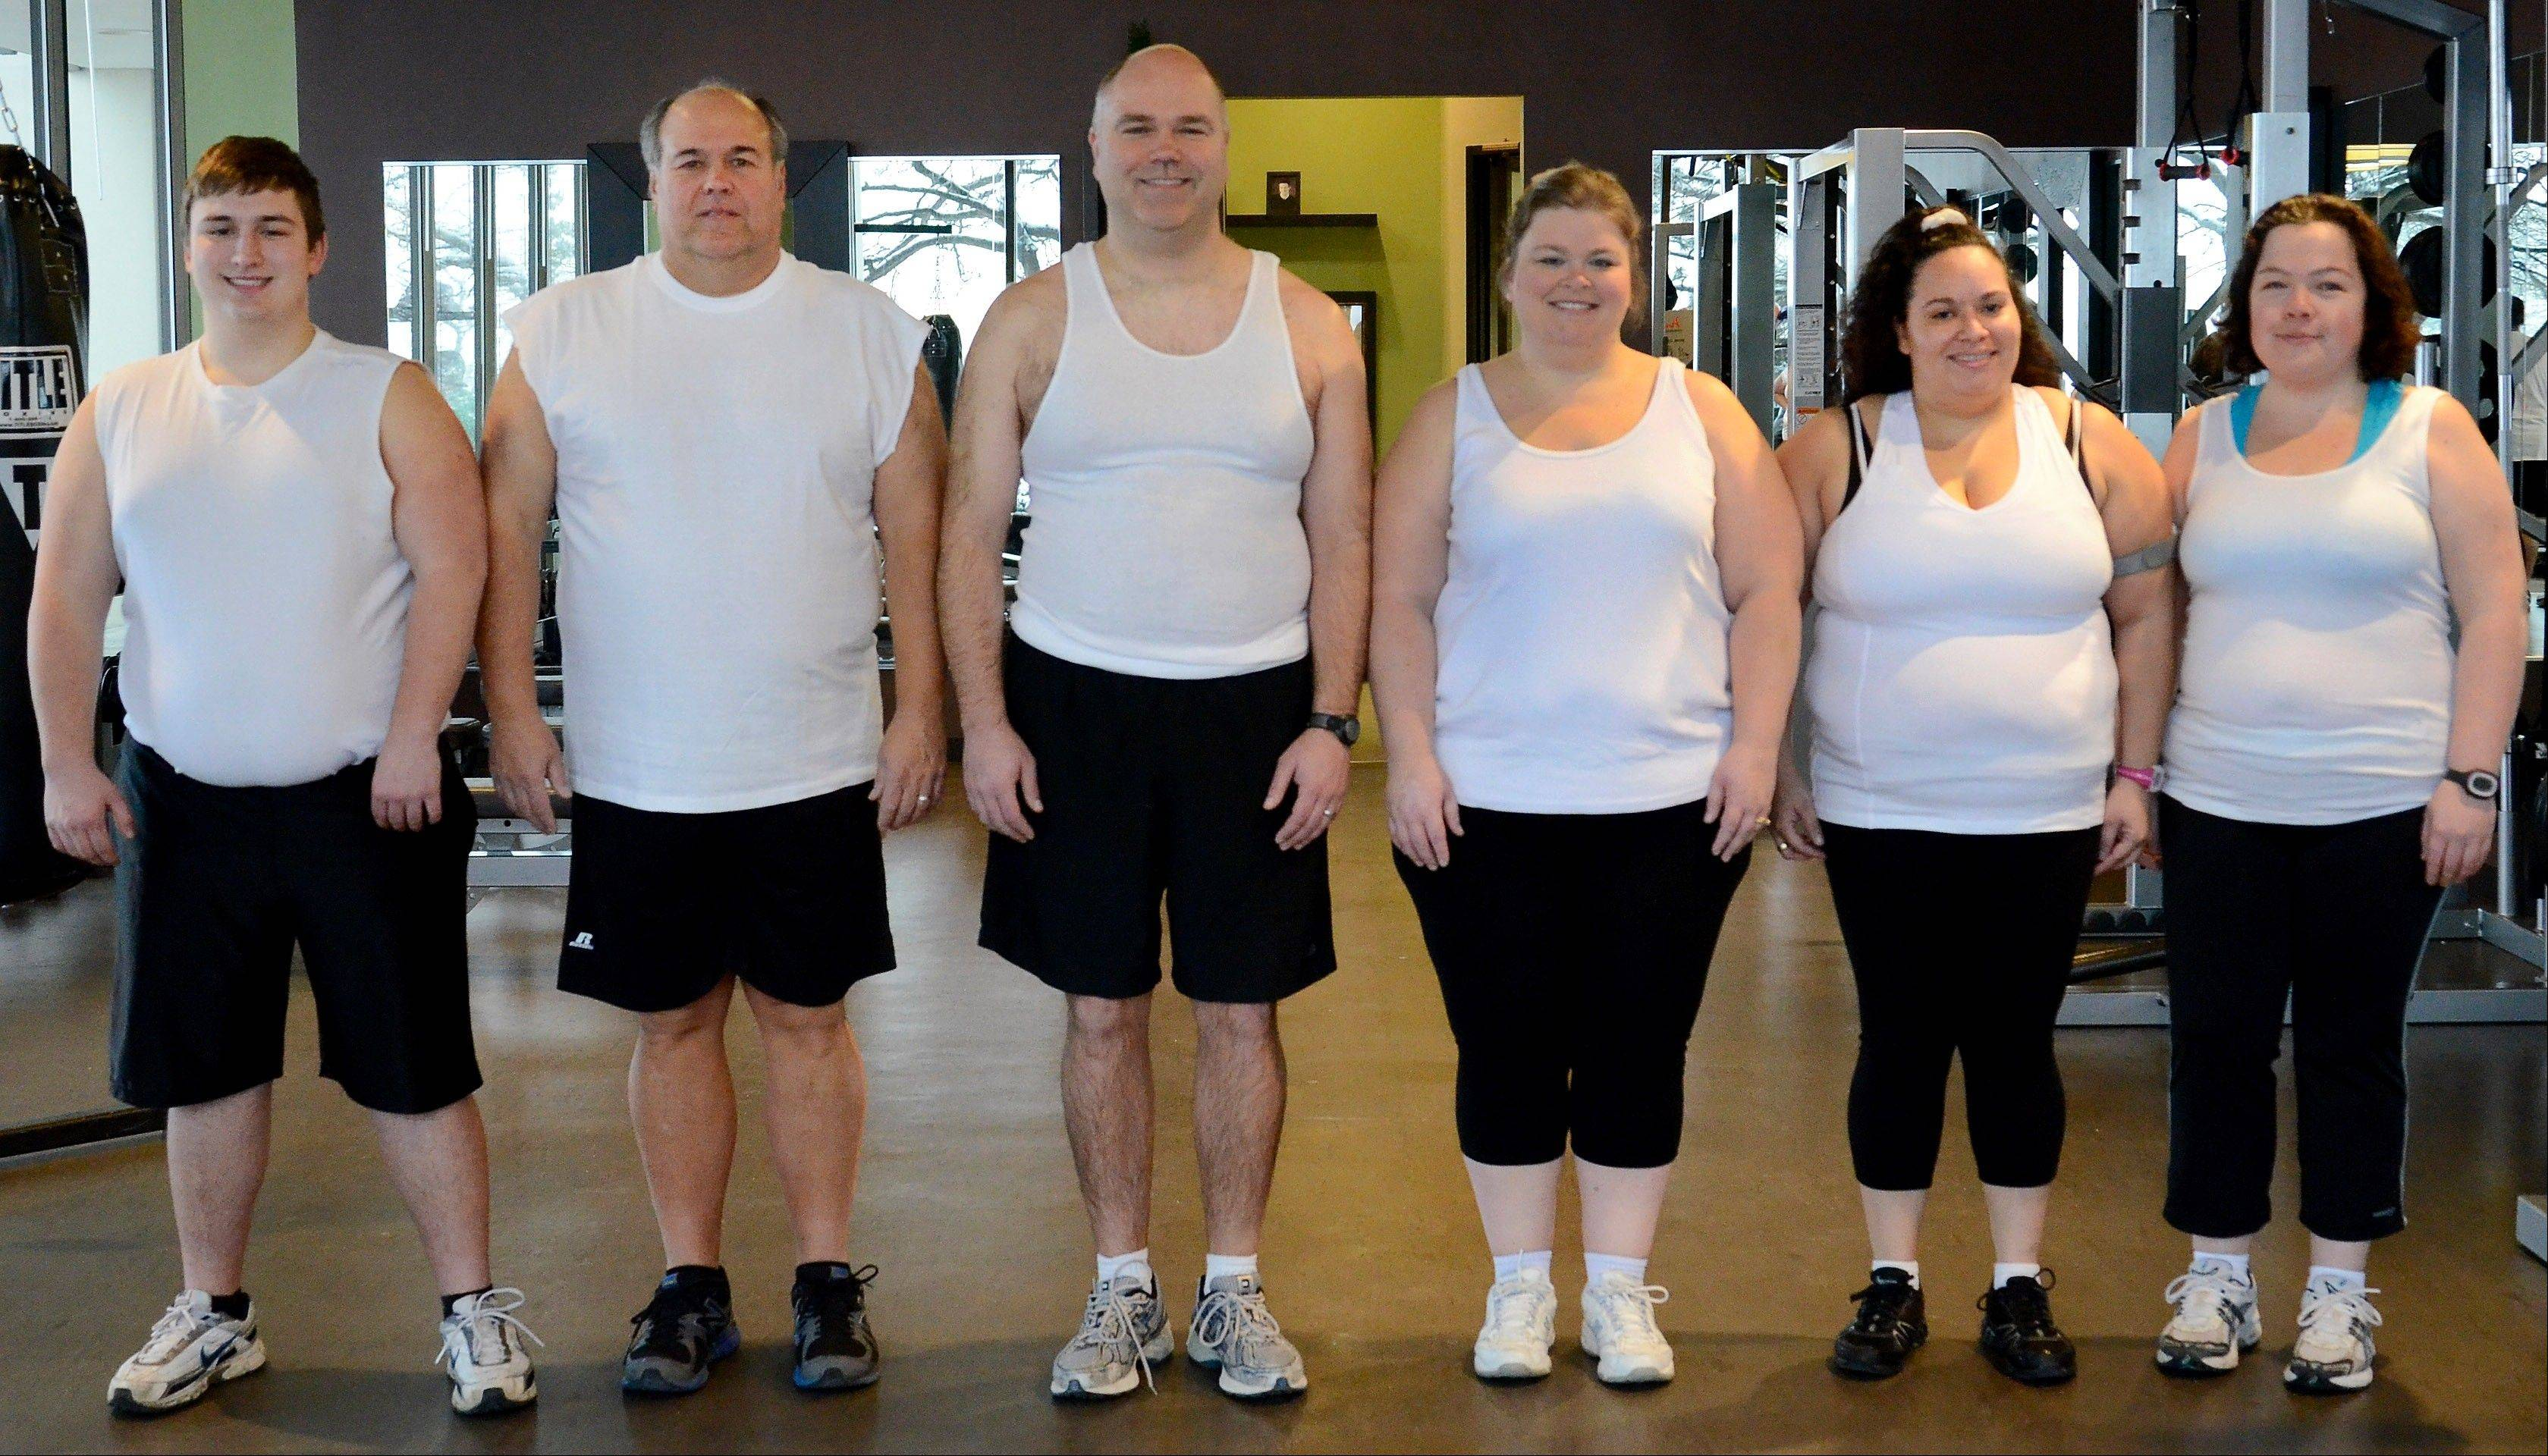 The 2013 Fittest Loser contestants weighed in at a combined 1,513 pounds in February.